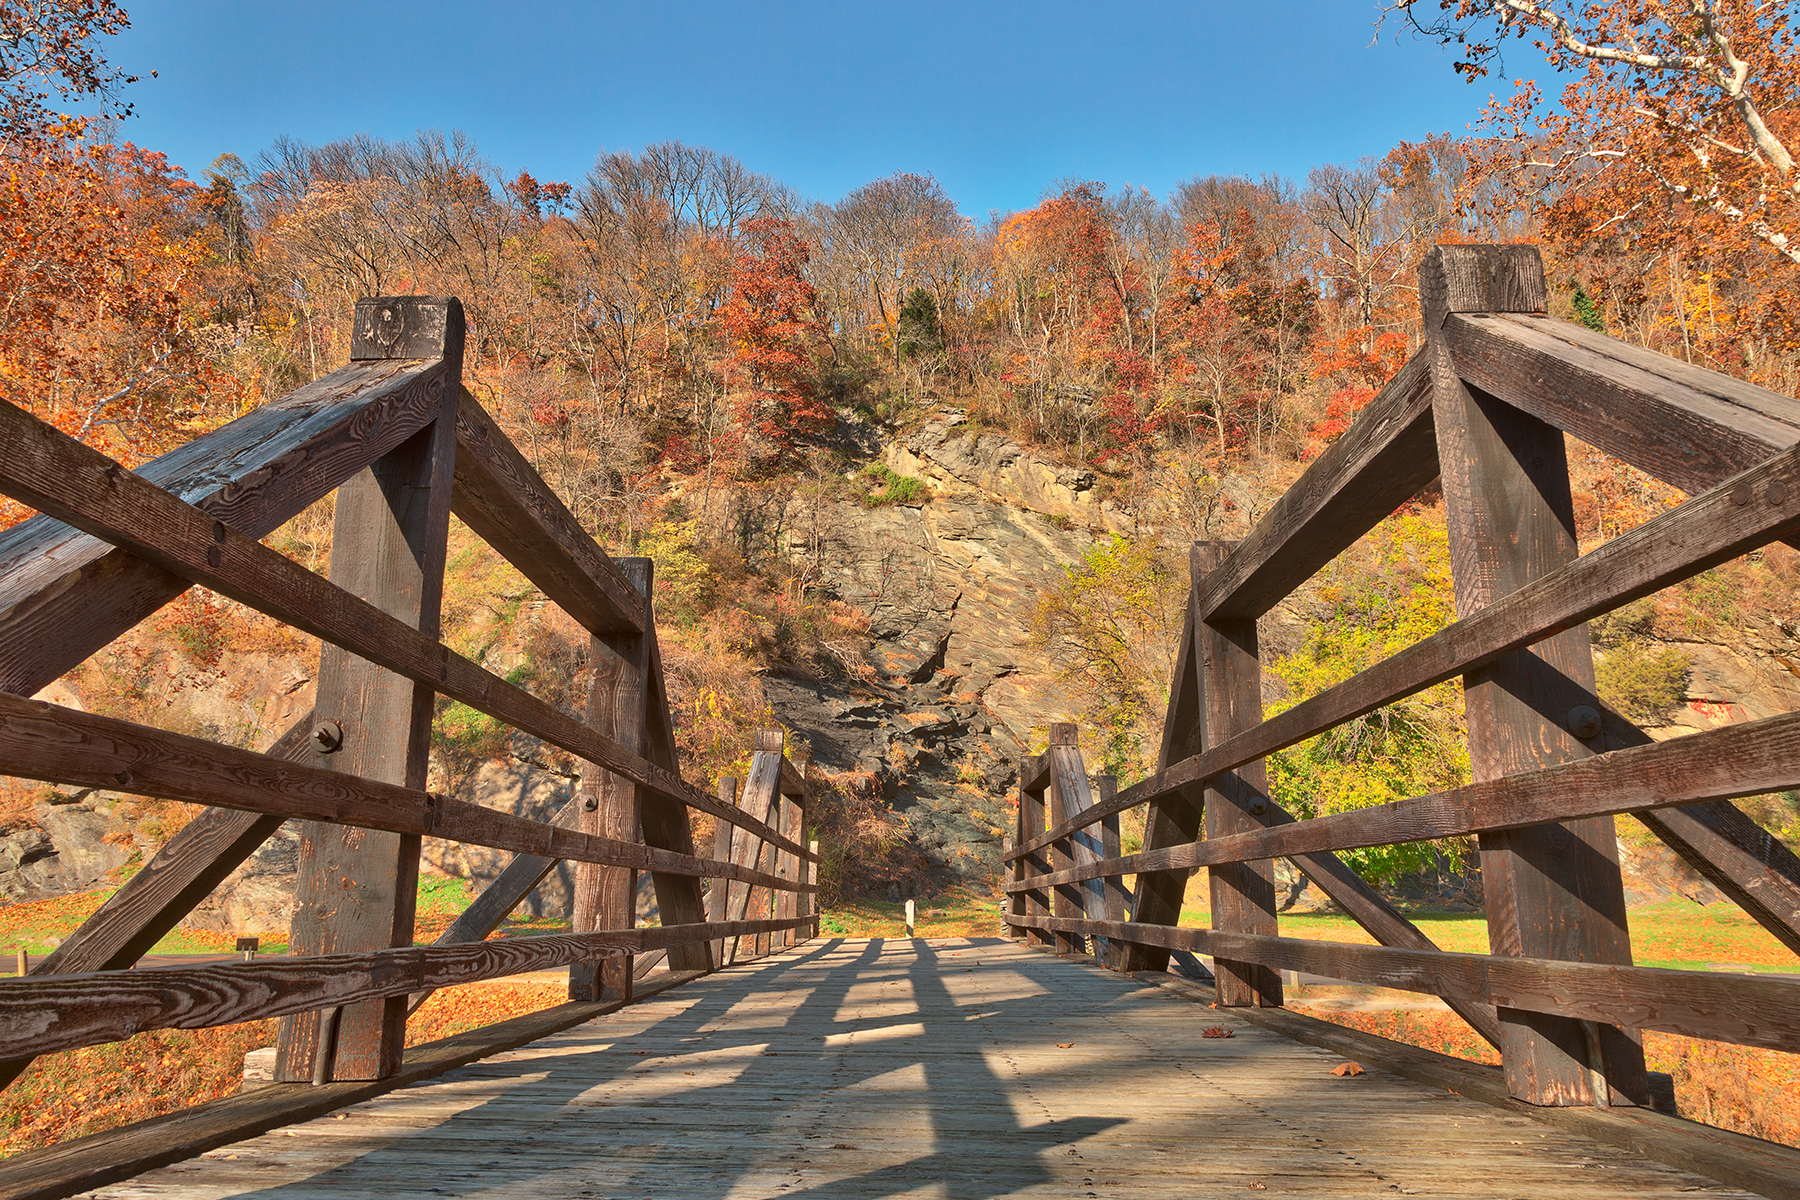 Bridge to fall - harpers ferry hdr photo